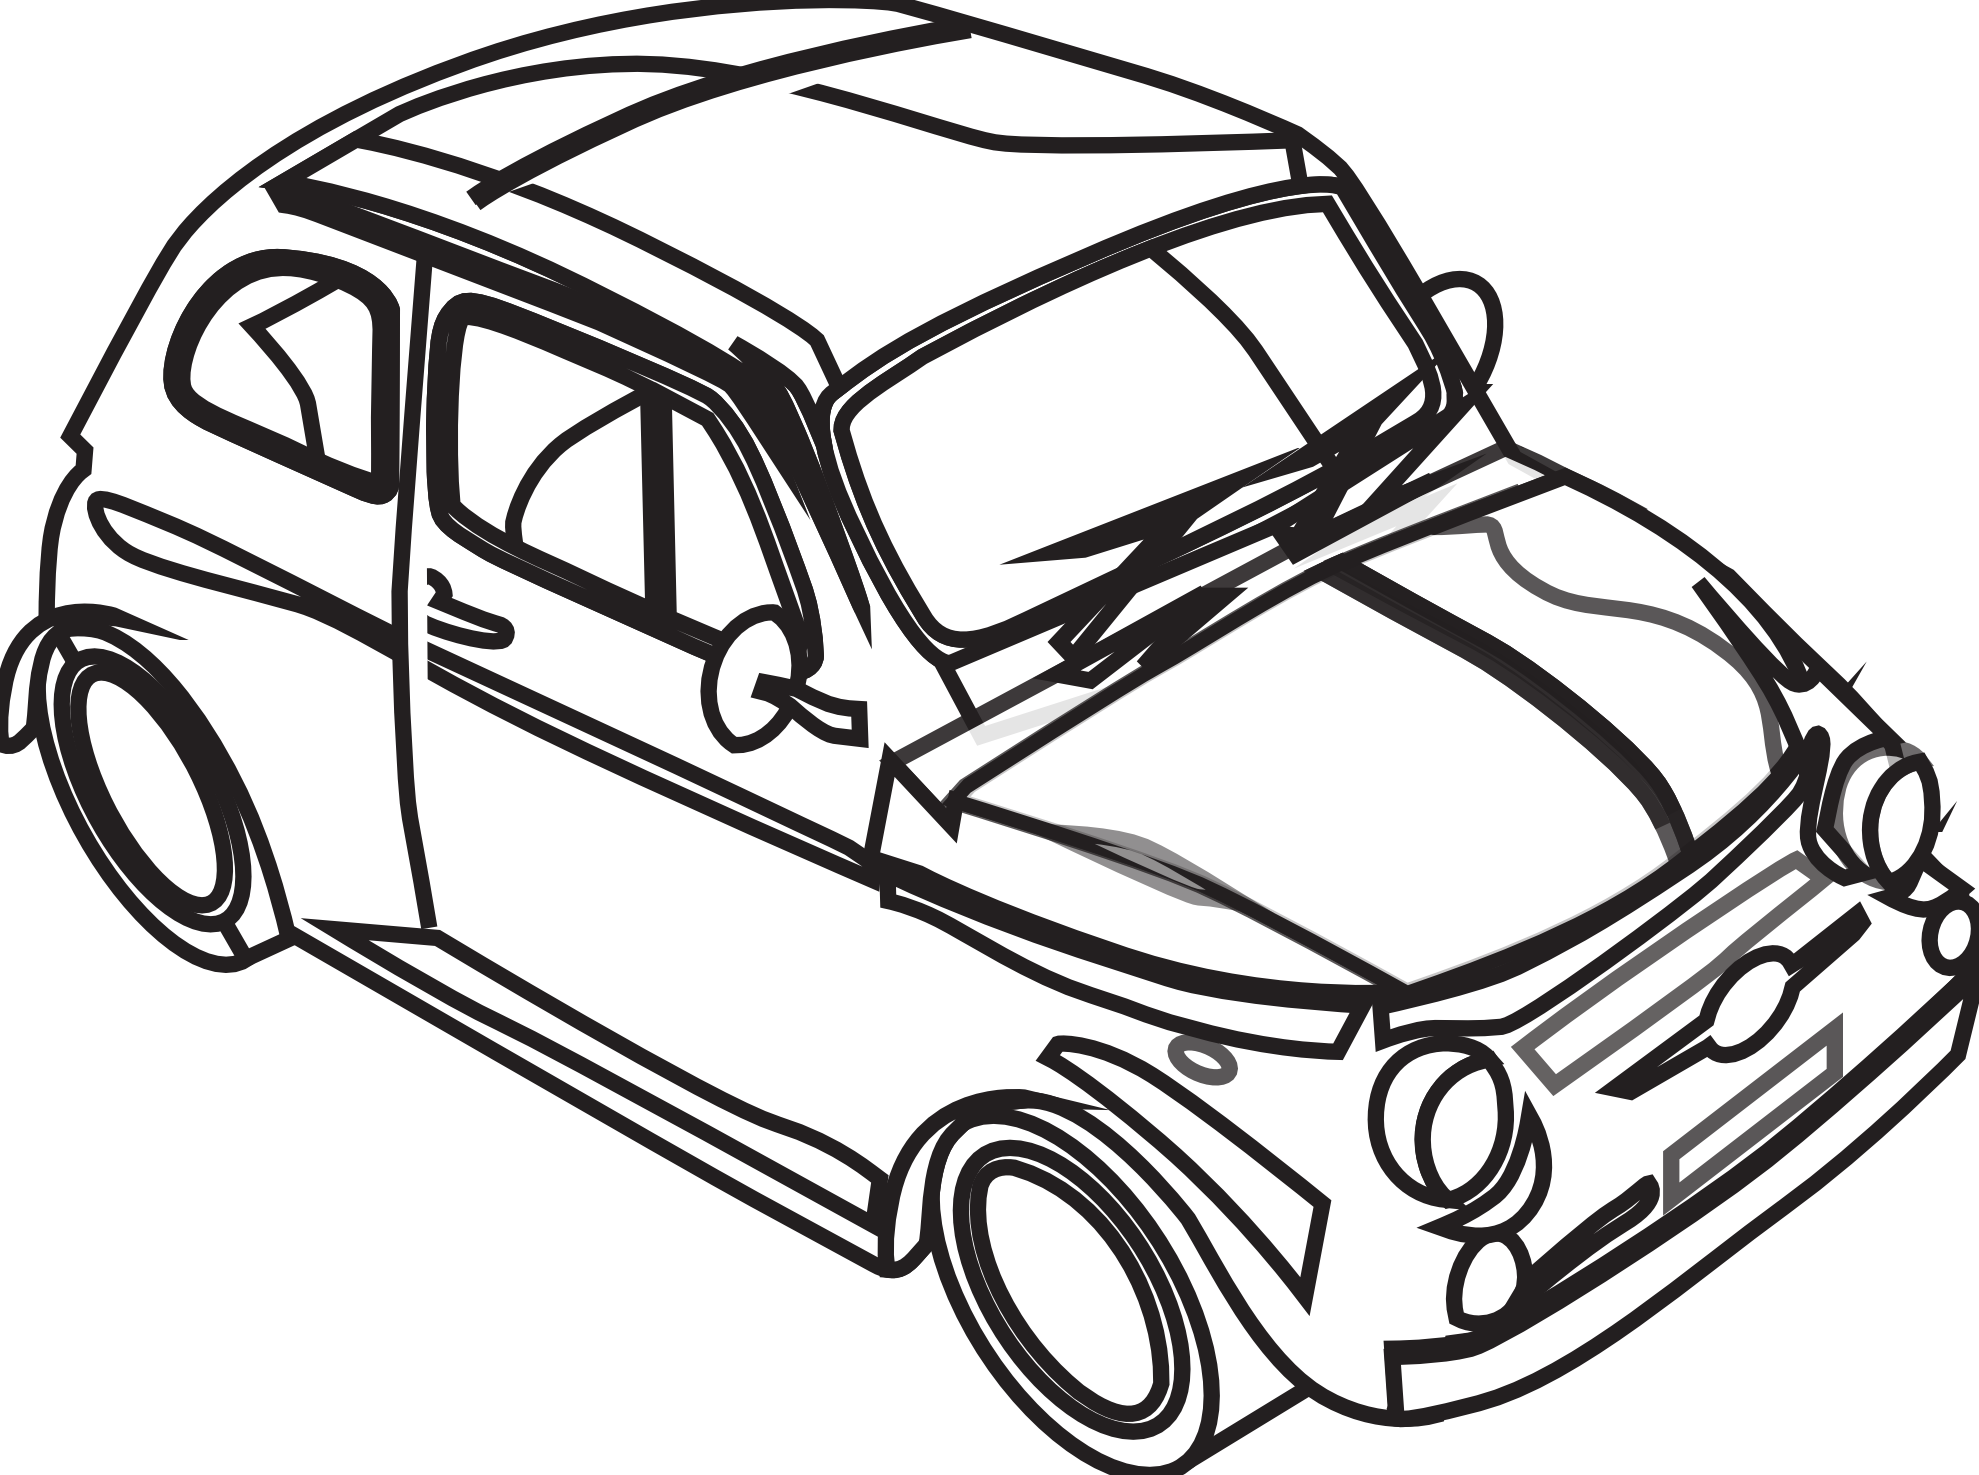 Race car side view clipart clip transparent library Black And White Car Clipart Image Group (68+) clip transparent library